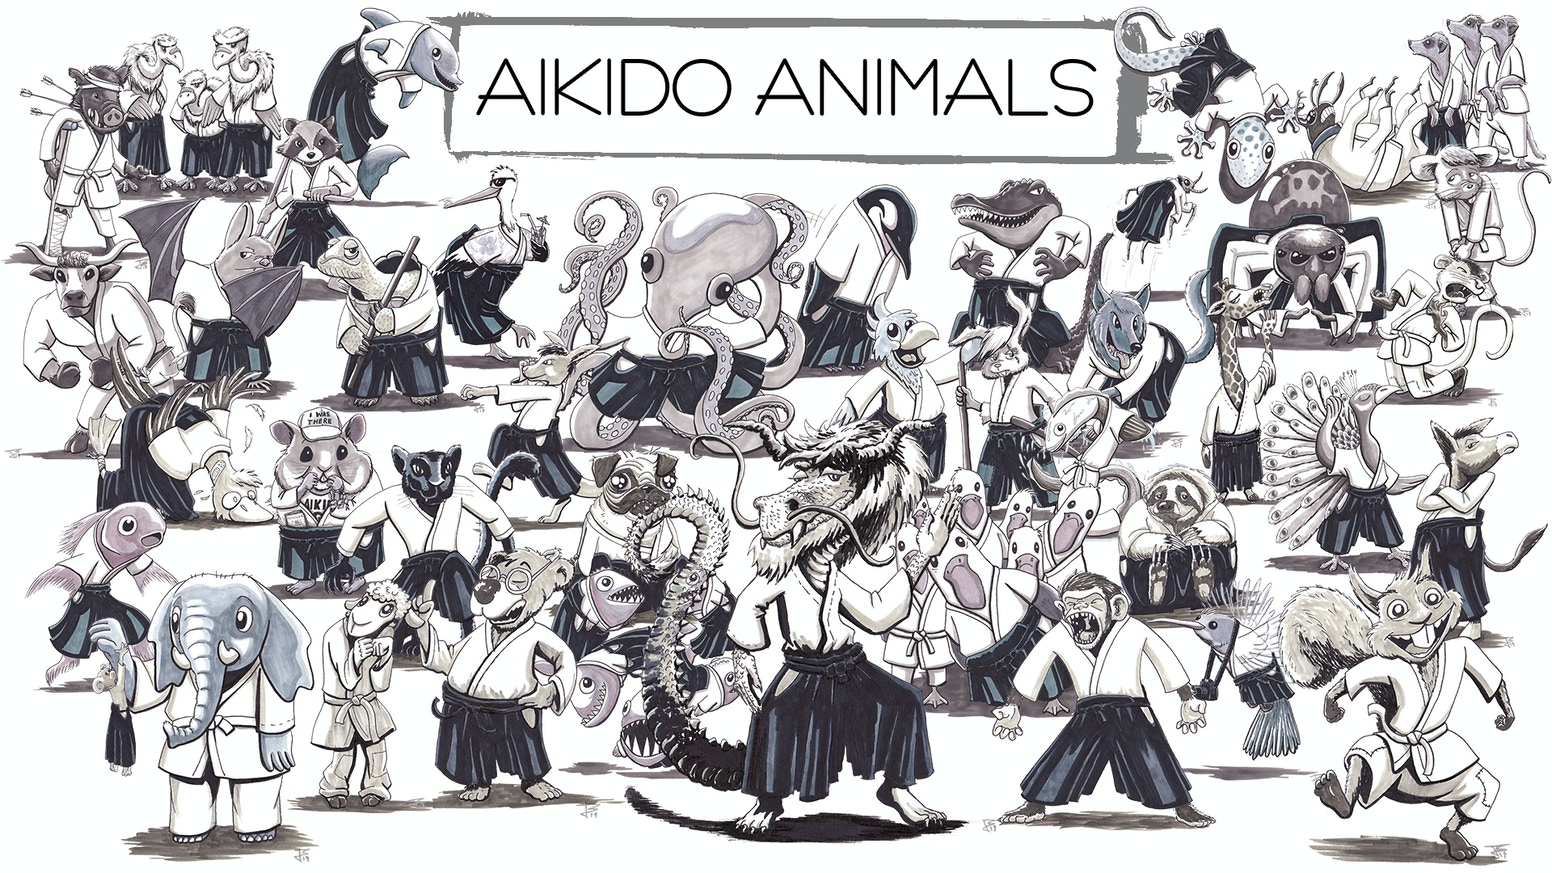 Aikido Animals